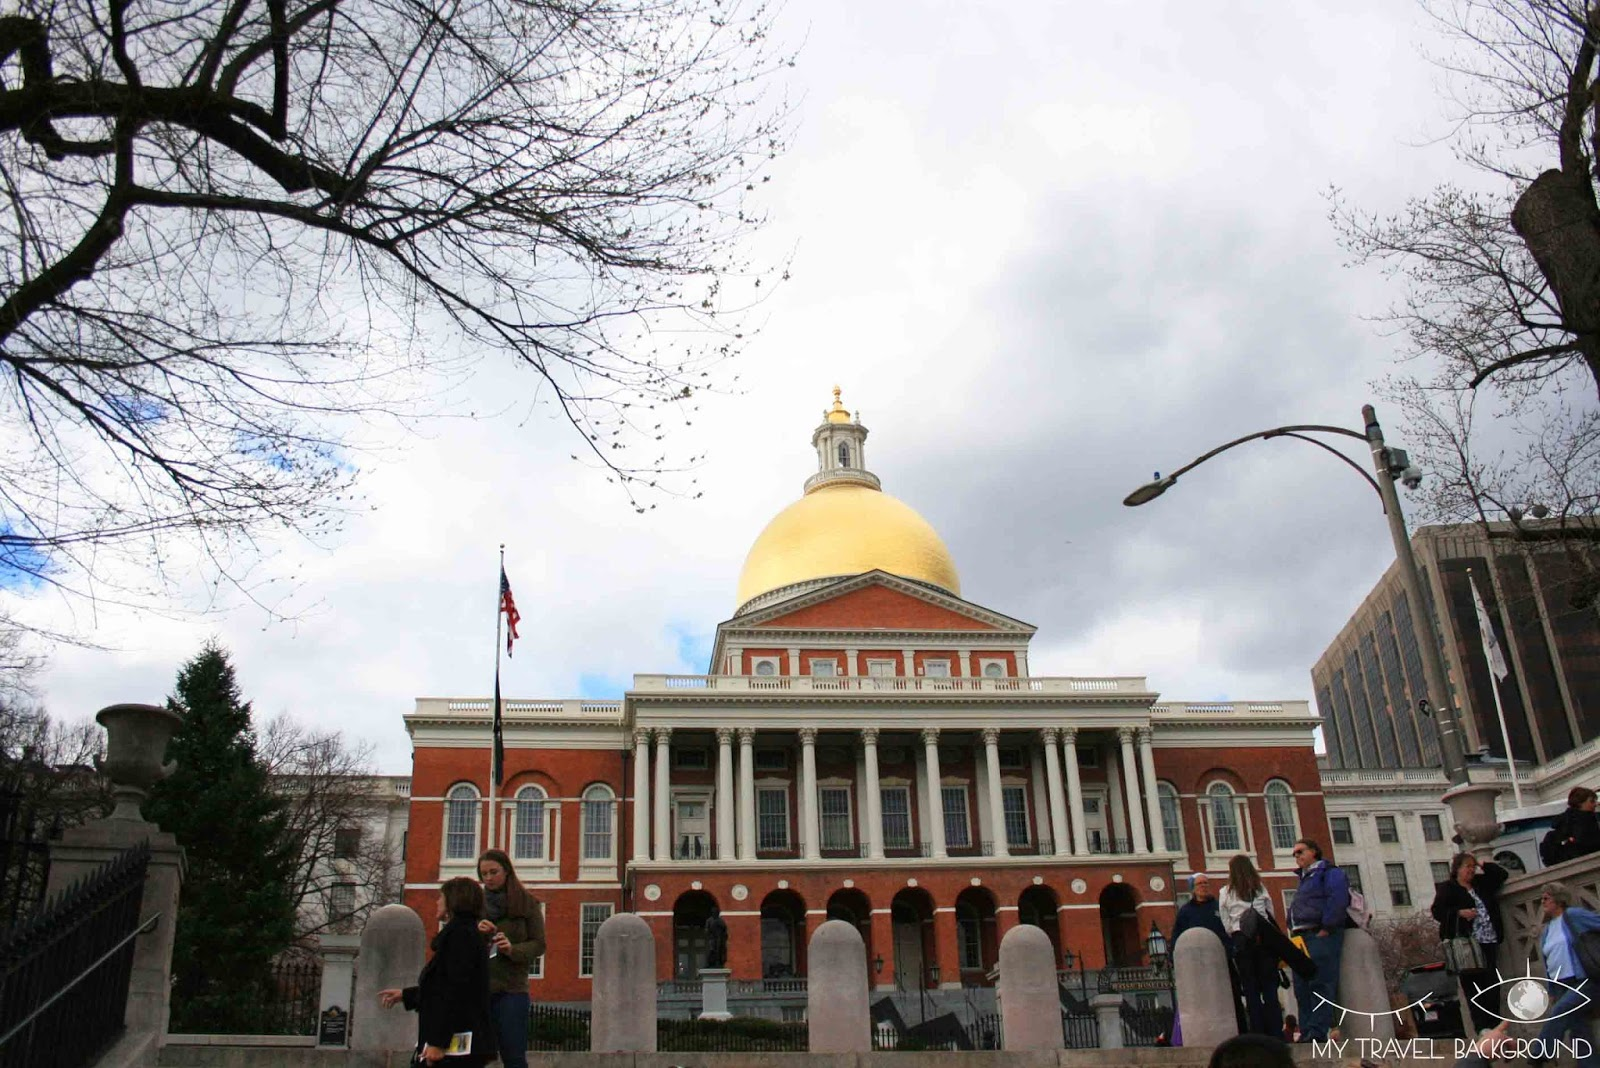 My Travel Background : Massachusetts State House